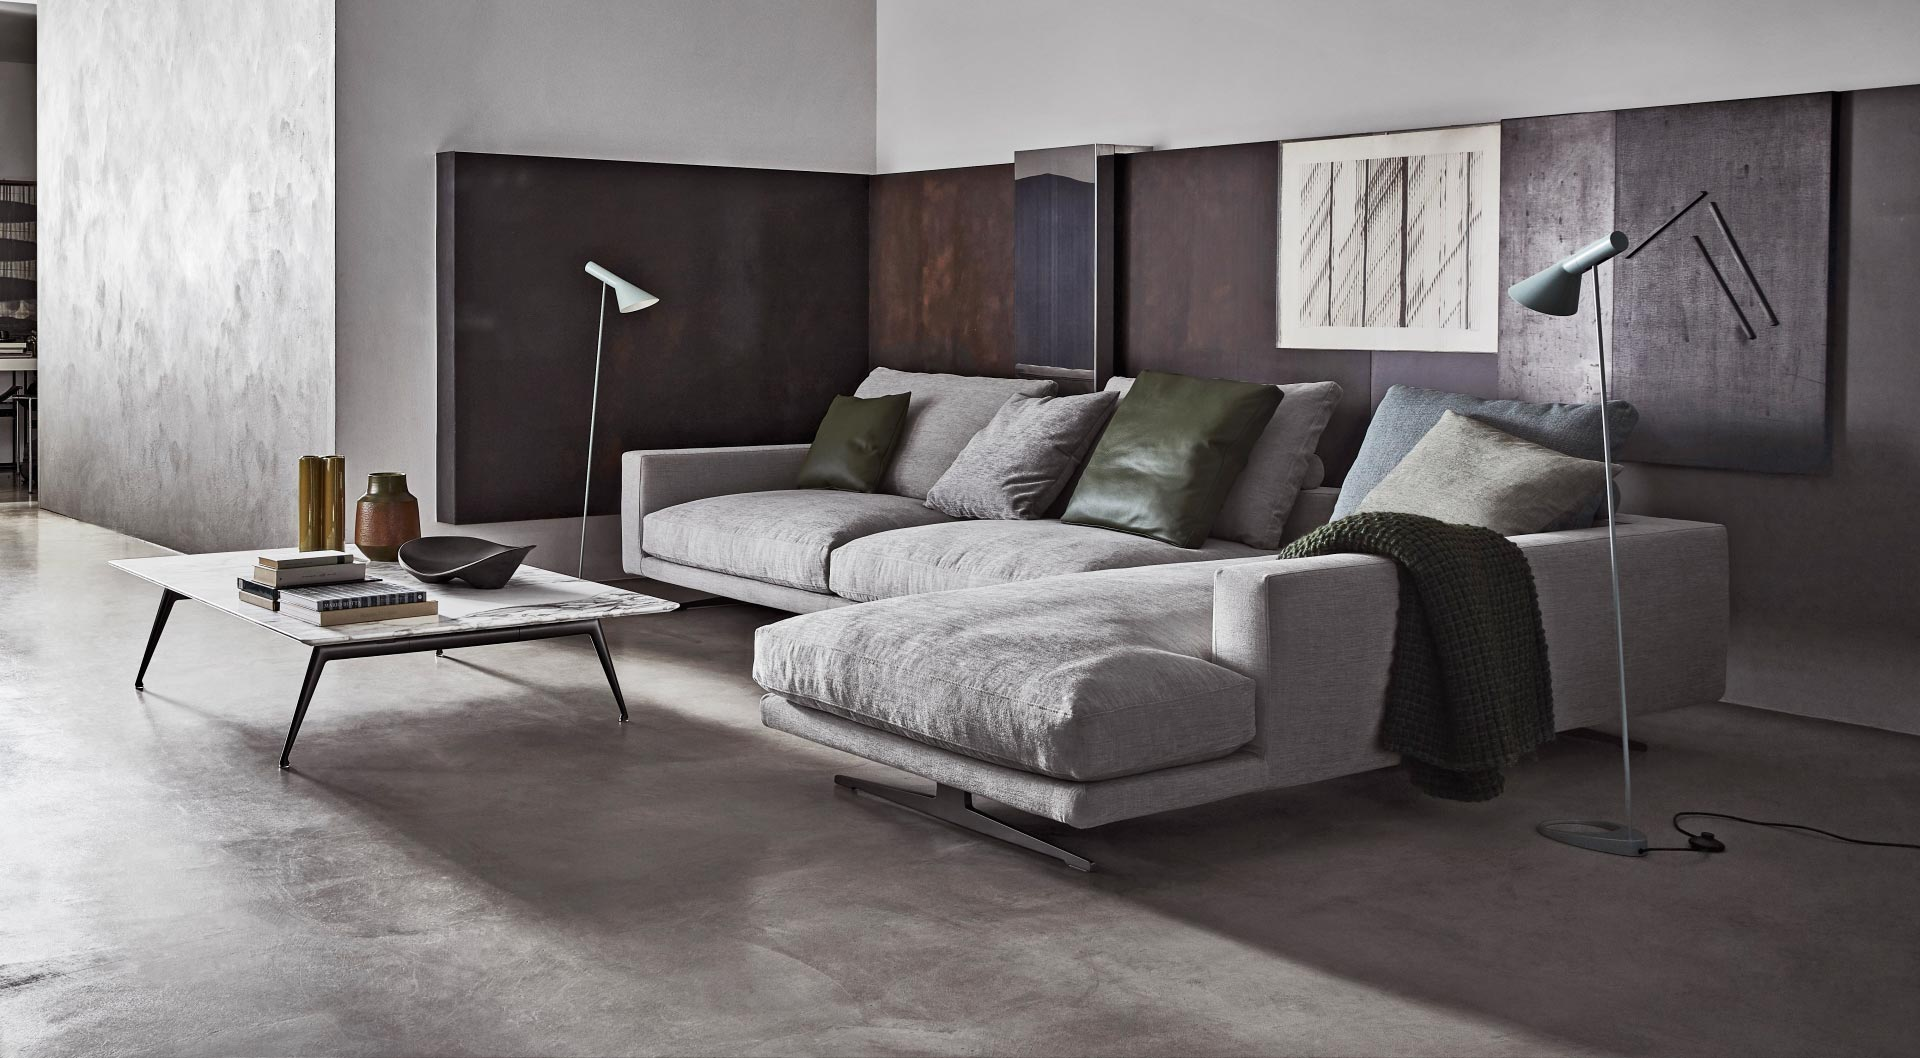 Flexform Brand Category Image - Flexform Campiello Modular Sofa